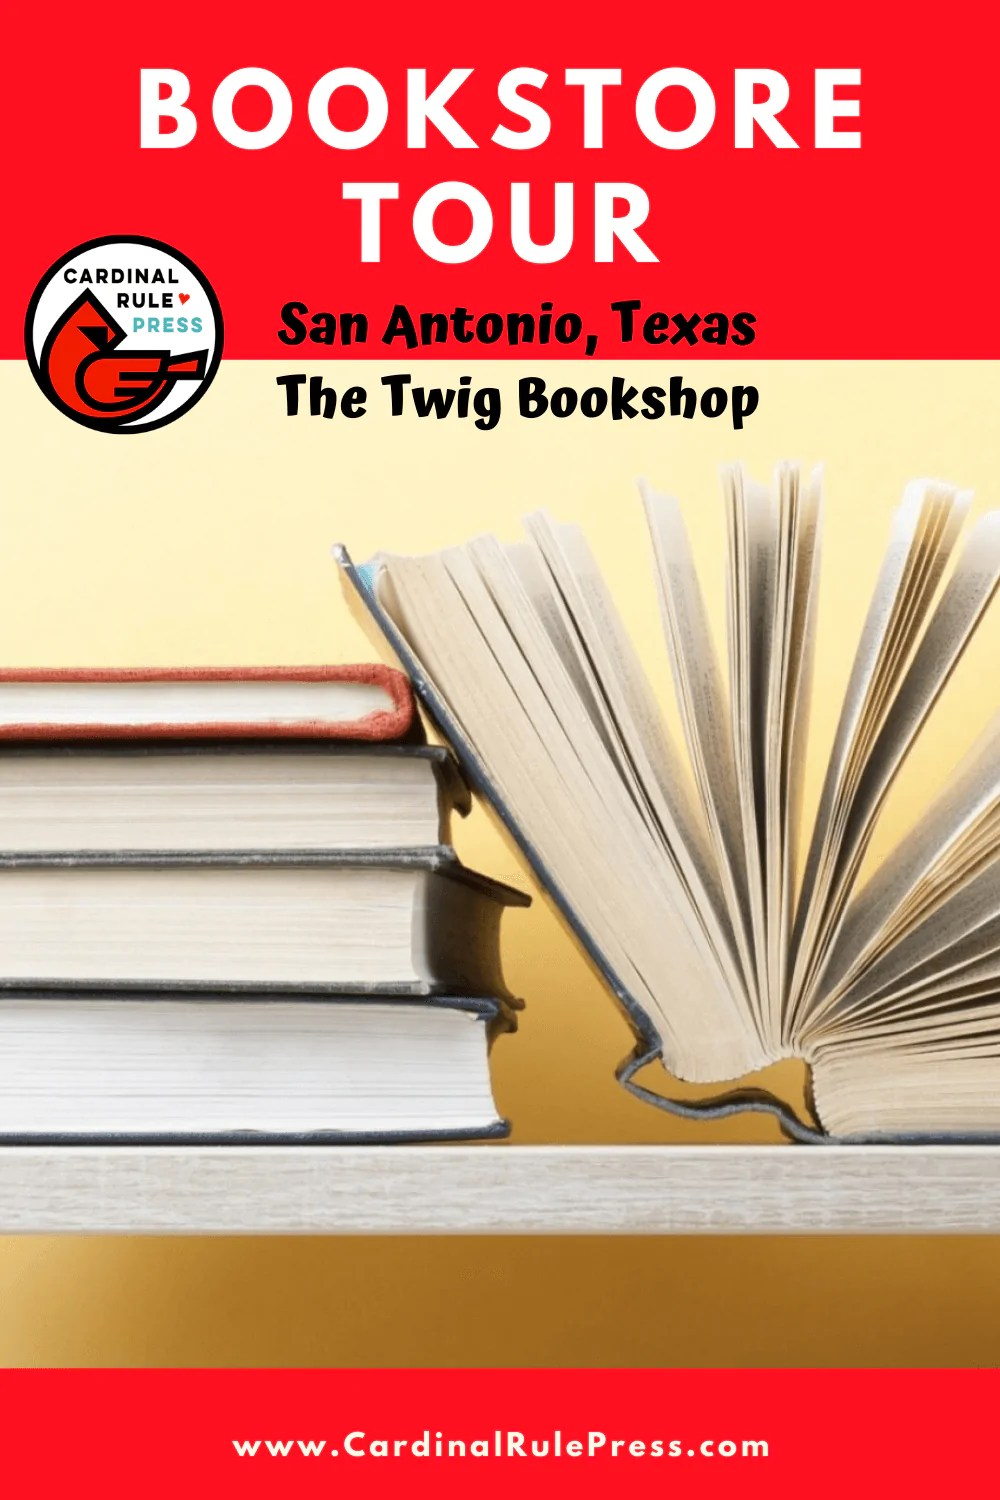 Summer Bookstore Tour: The Twig Bookshop in San Antonio, TX